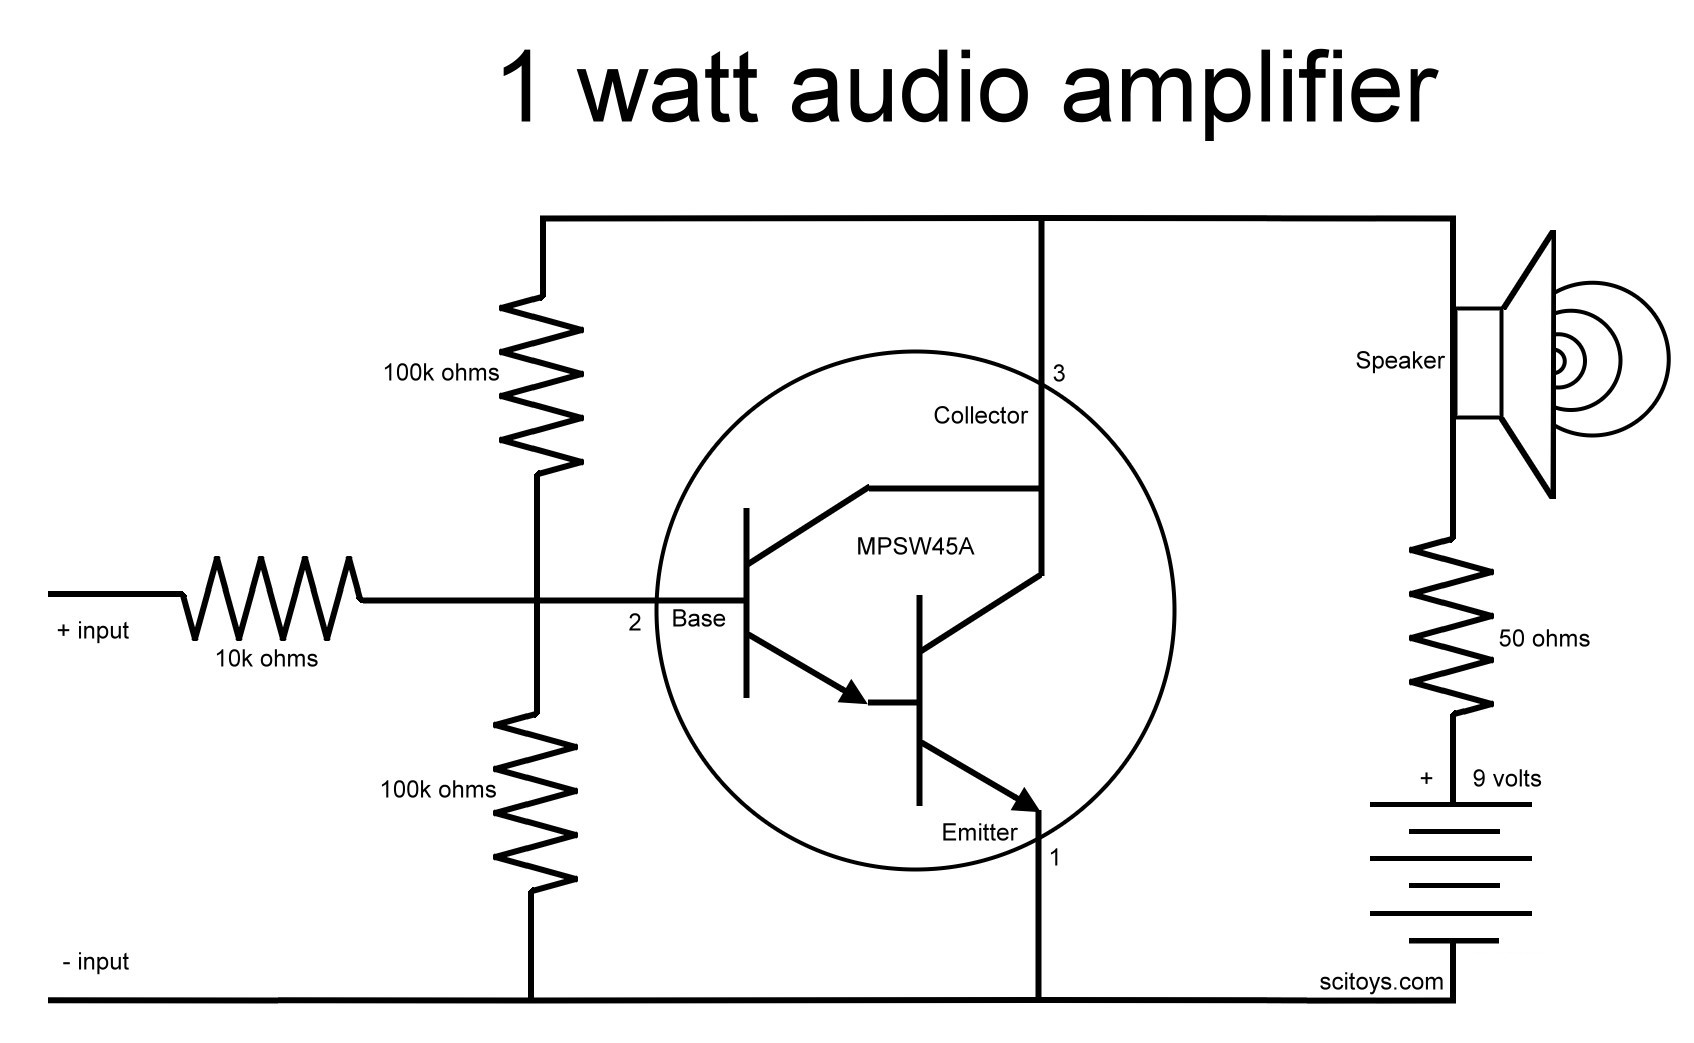 Audio Amplifier With Mpsw45a Transistor Mullaidiyprojects